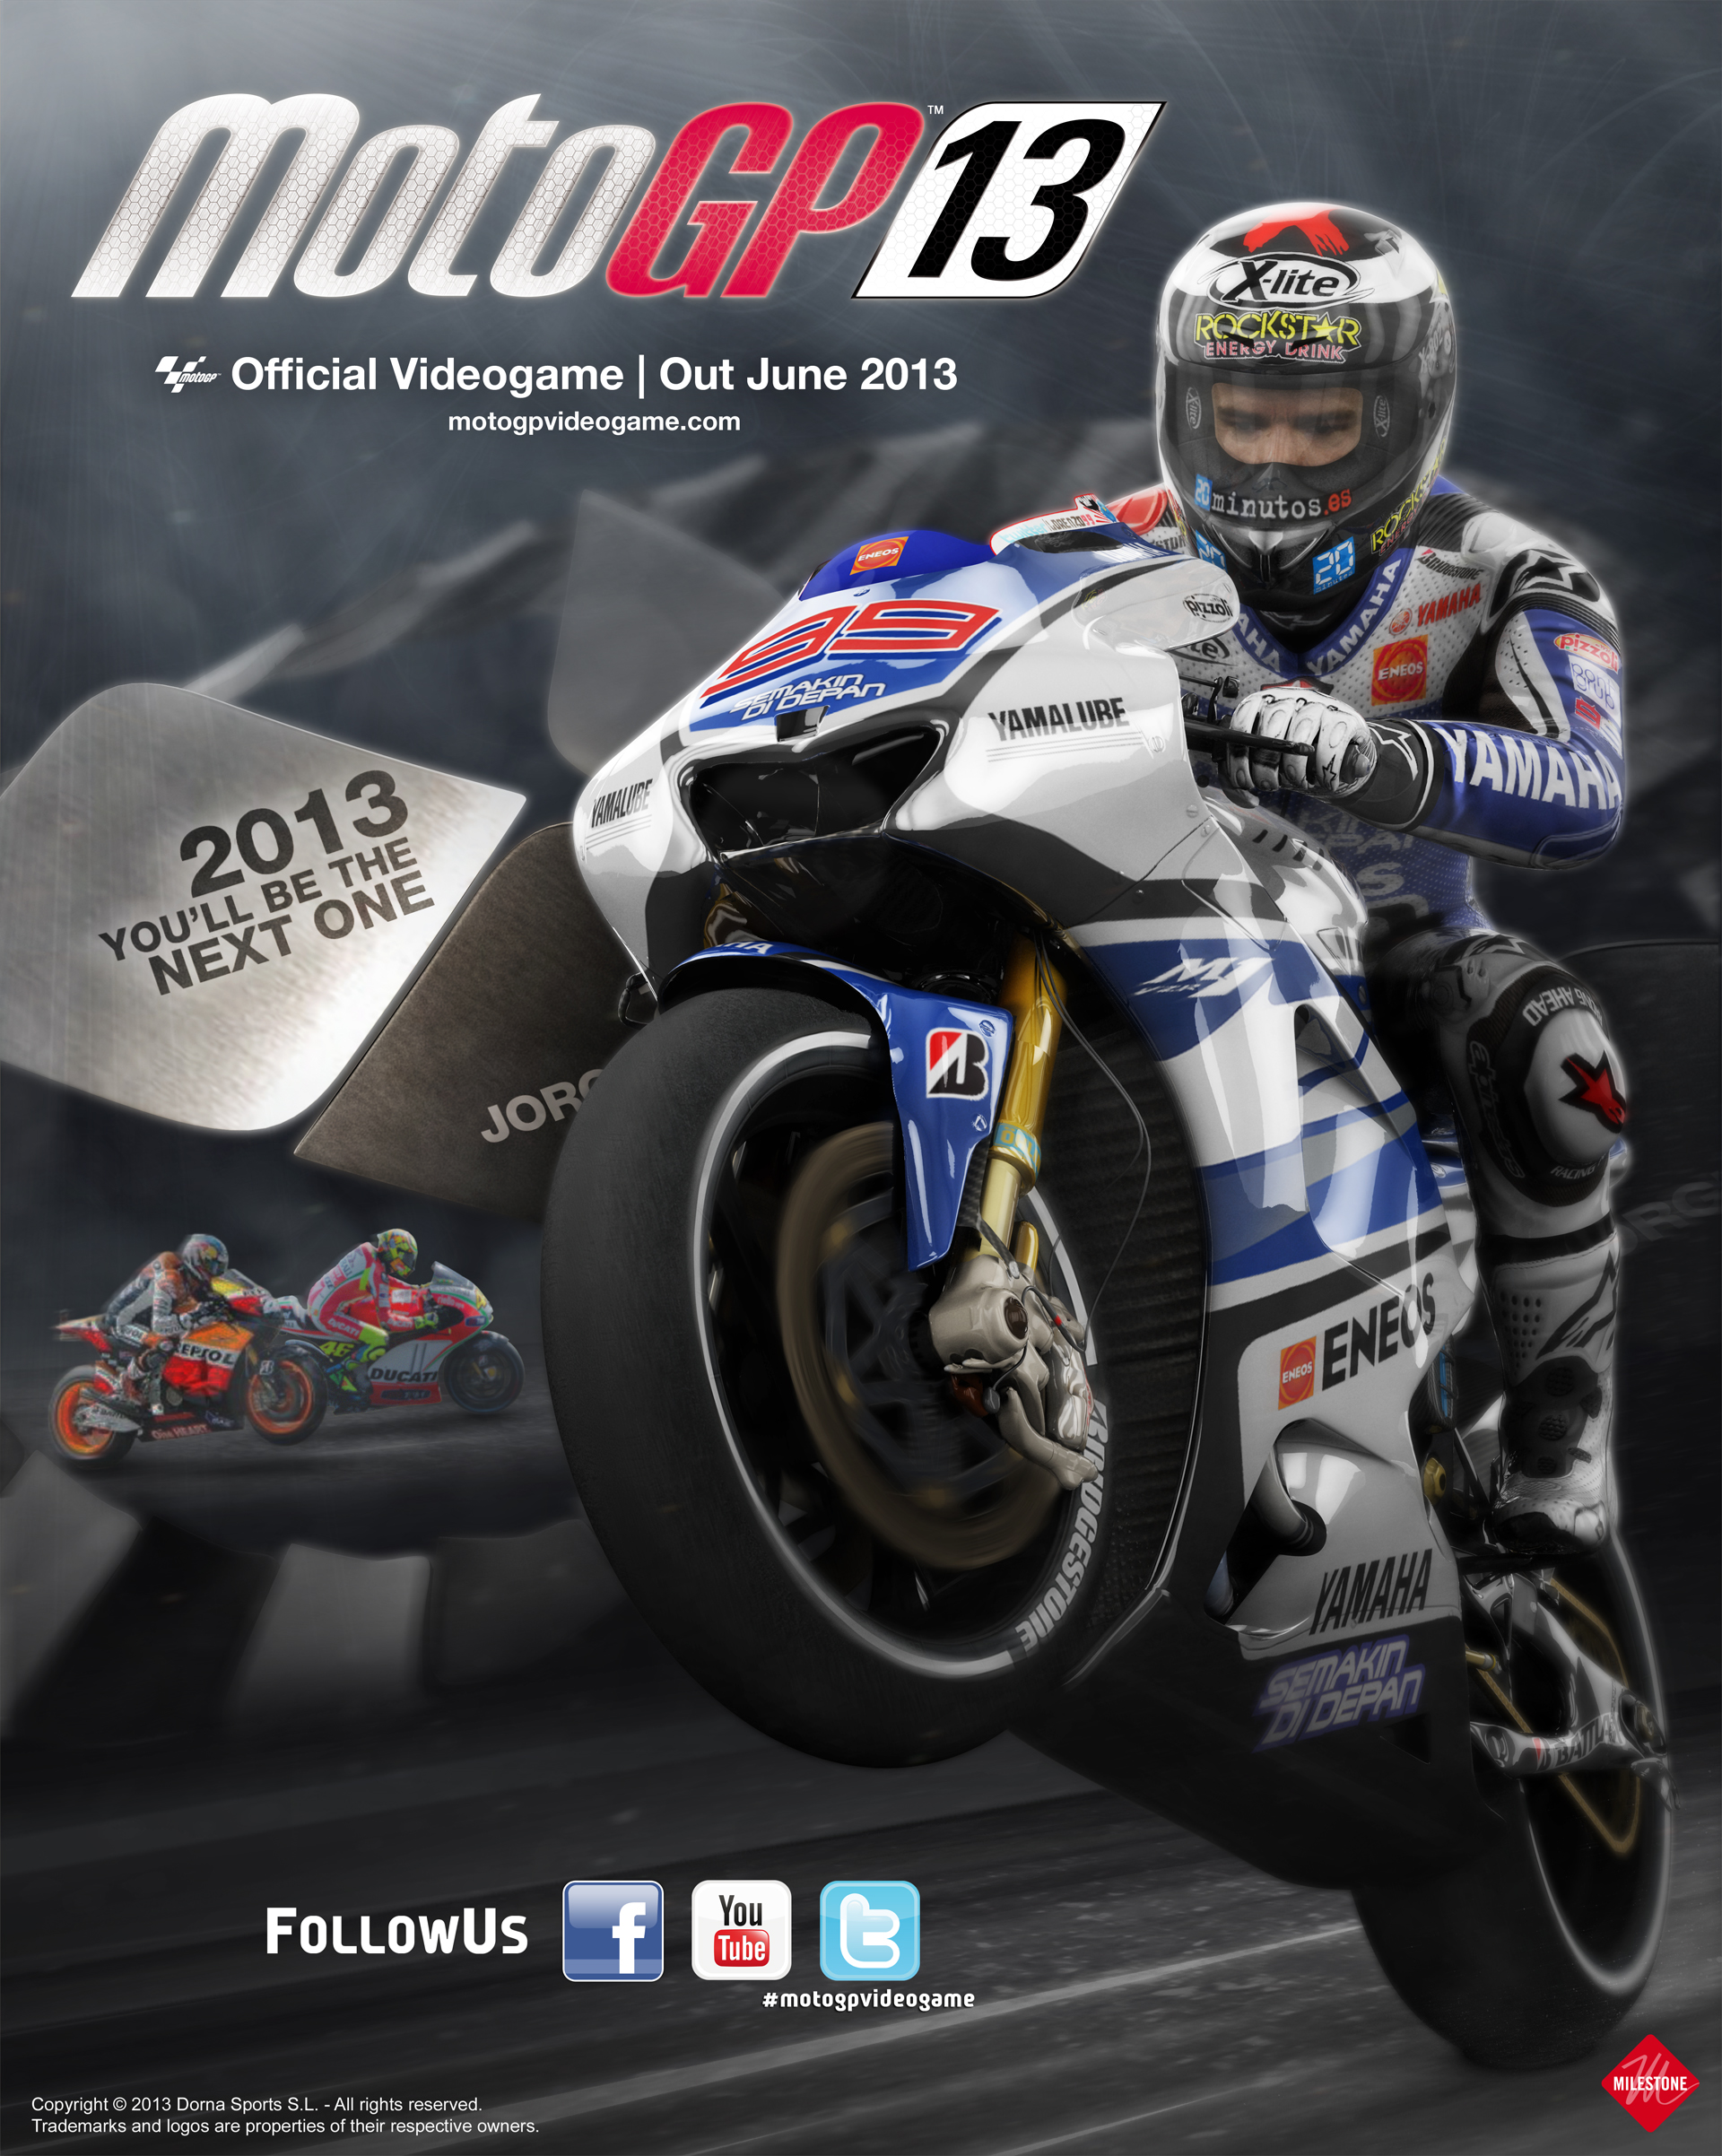 MotoGP ART - You'll be the next one